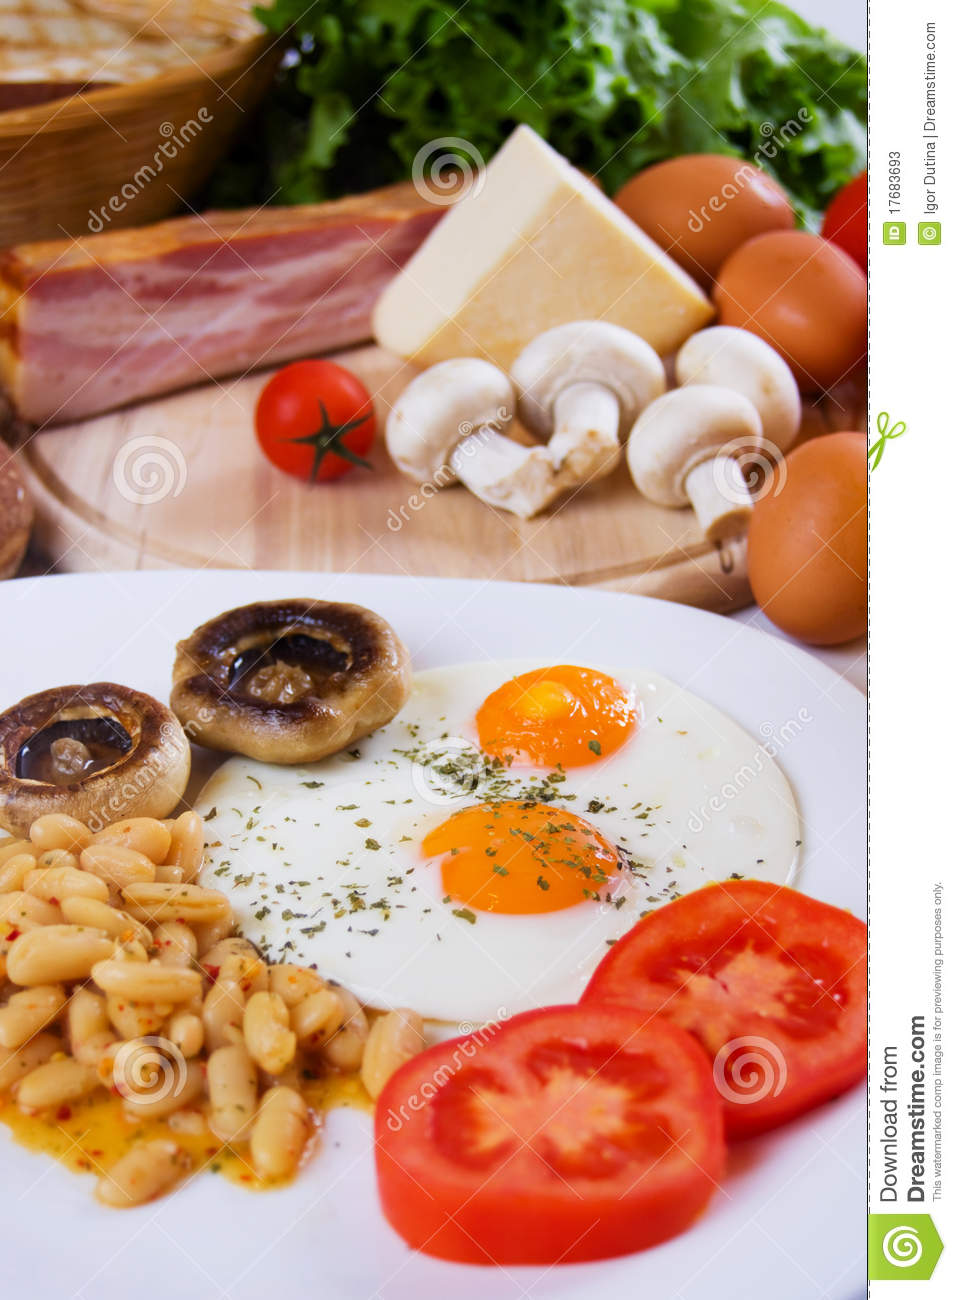 Fried Eggs With Beans And Mushrooms Stock Photos - Image: 17683693